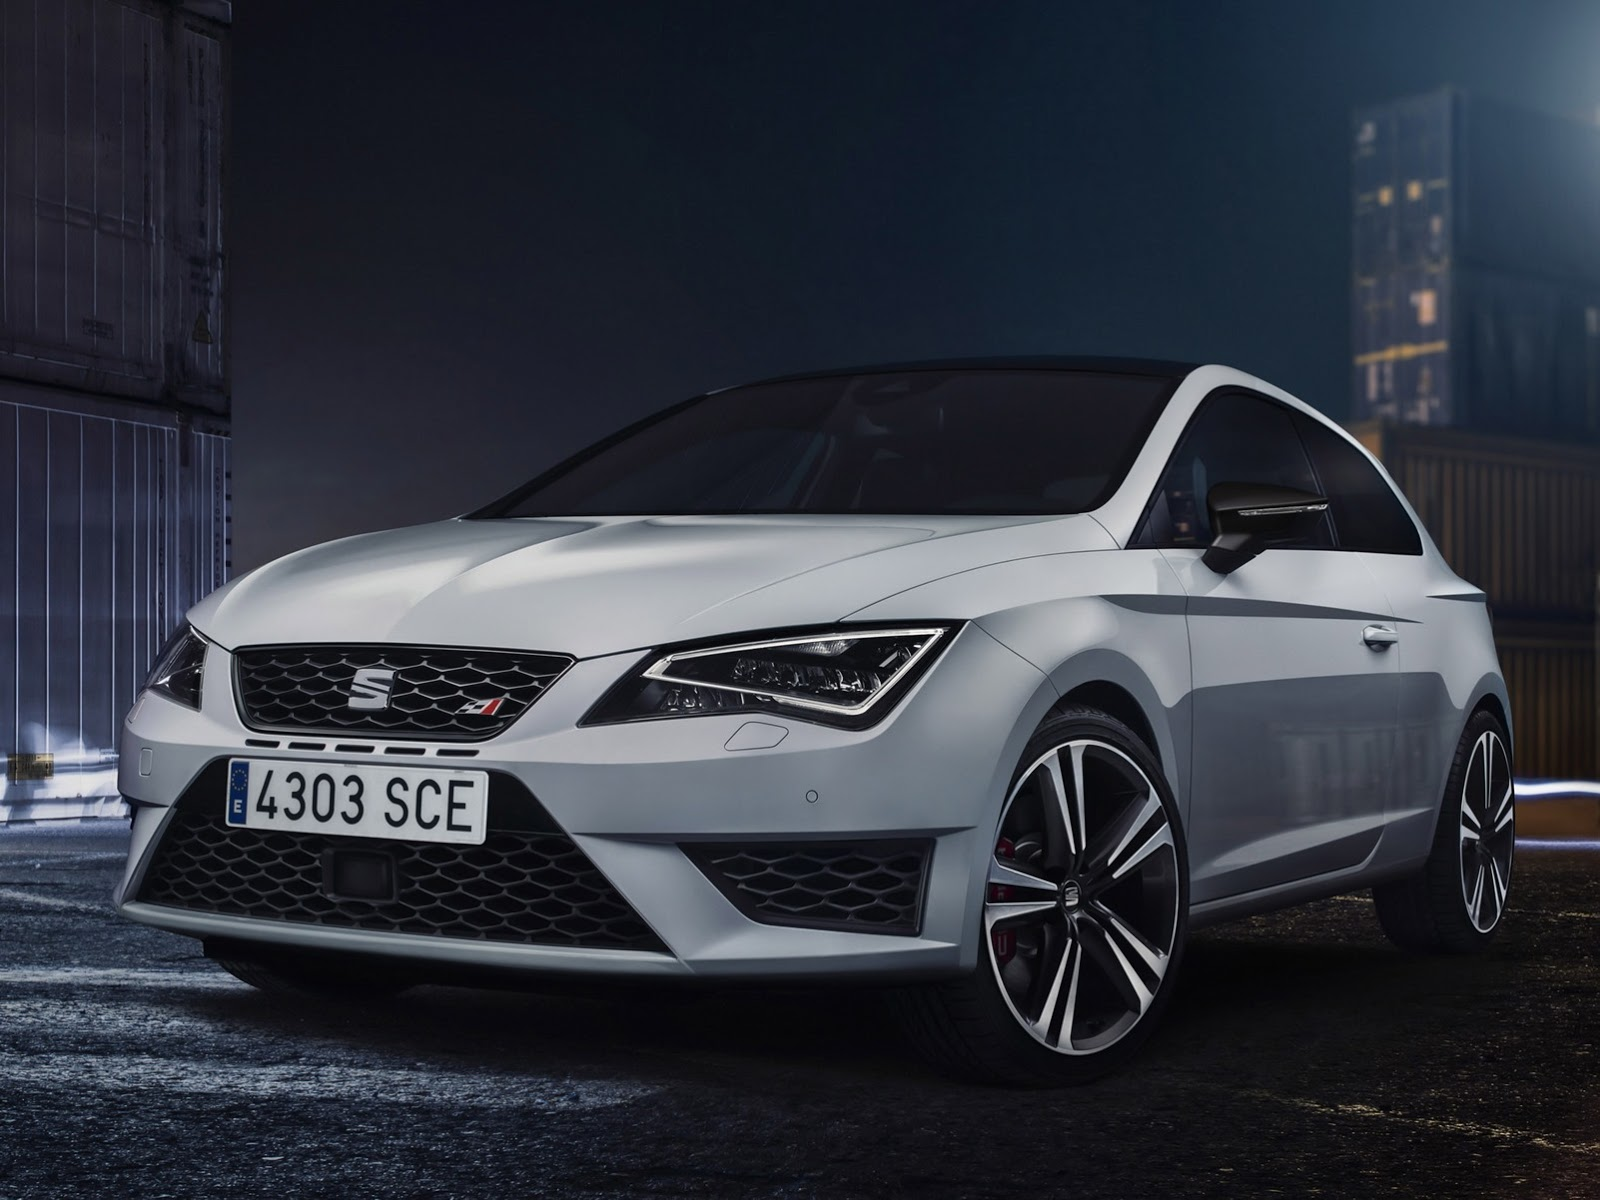 seat leon cupra 2014 les photos officielles. Black Bedroom Furniture Sets. Home Design Ideas